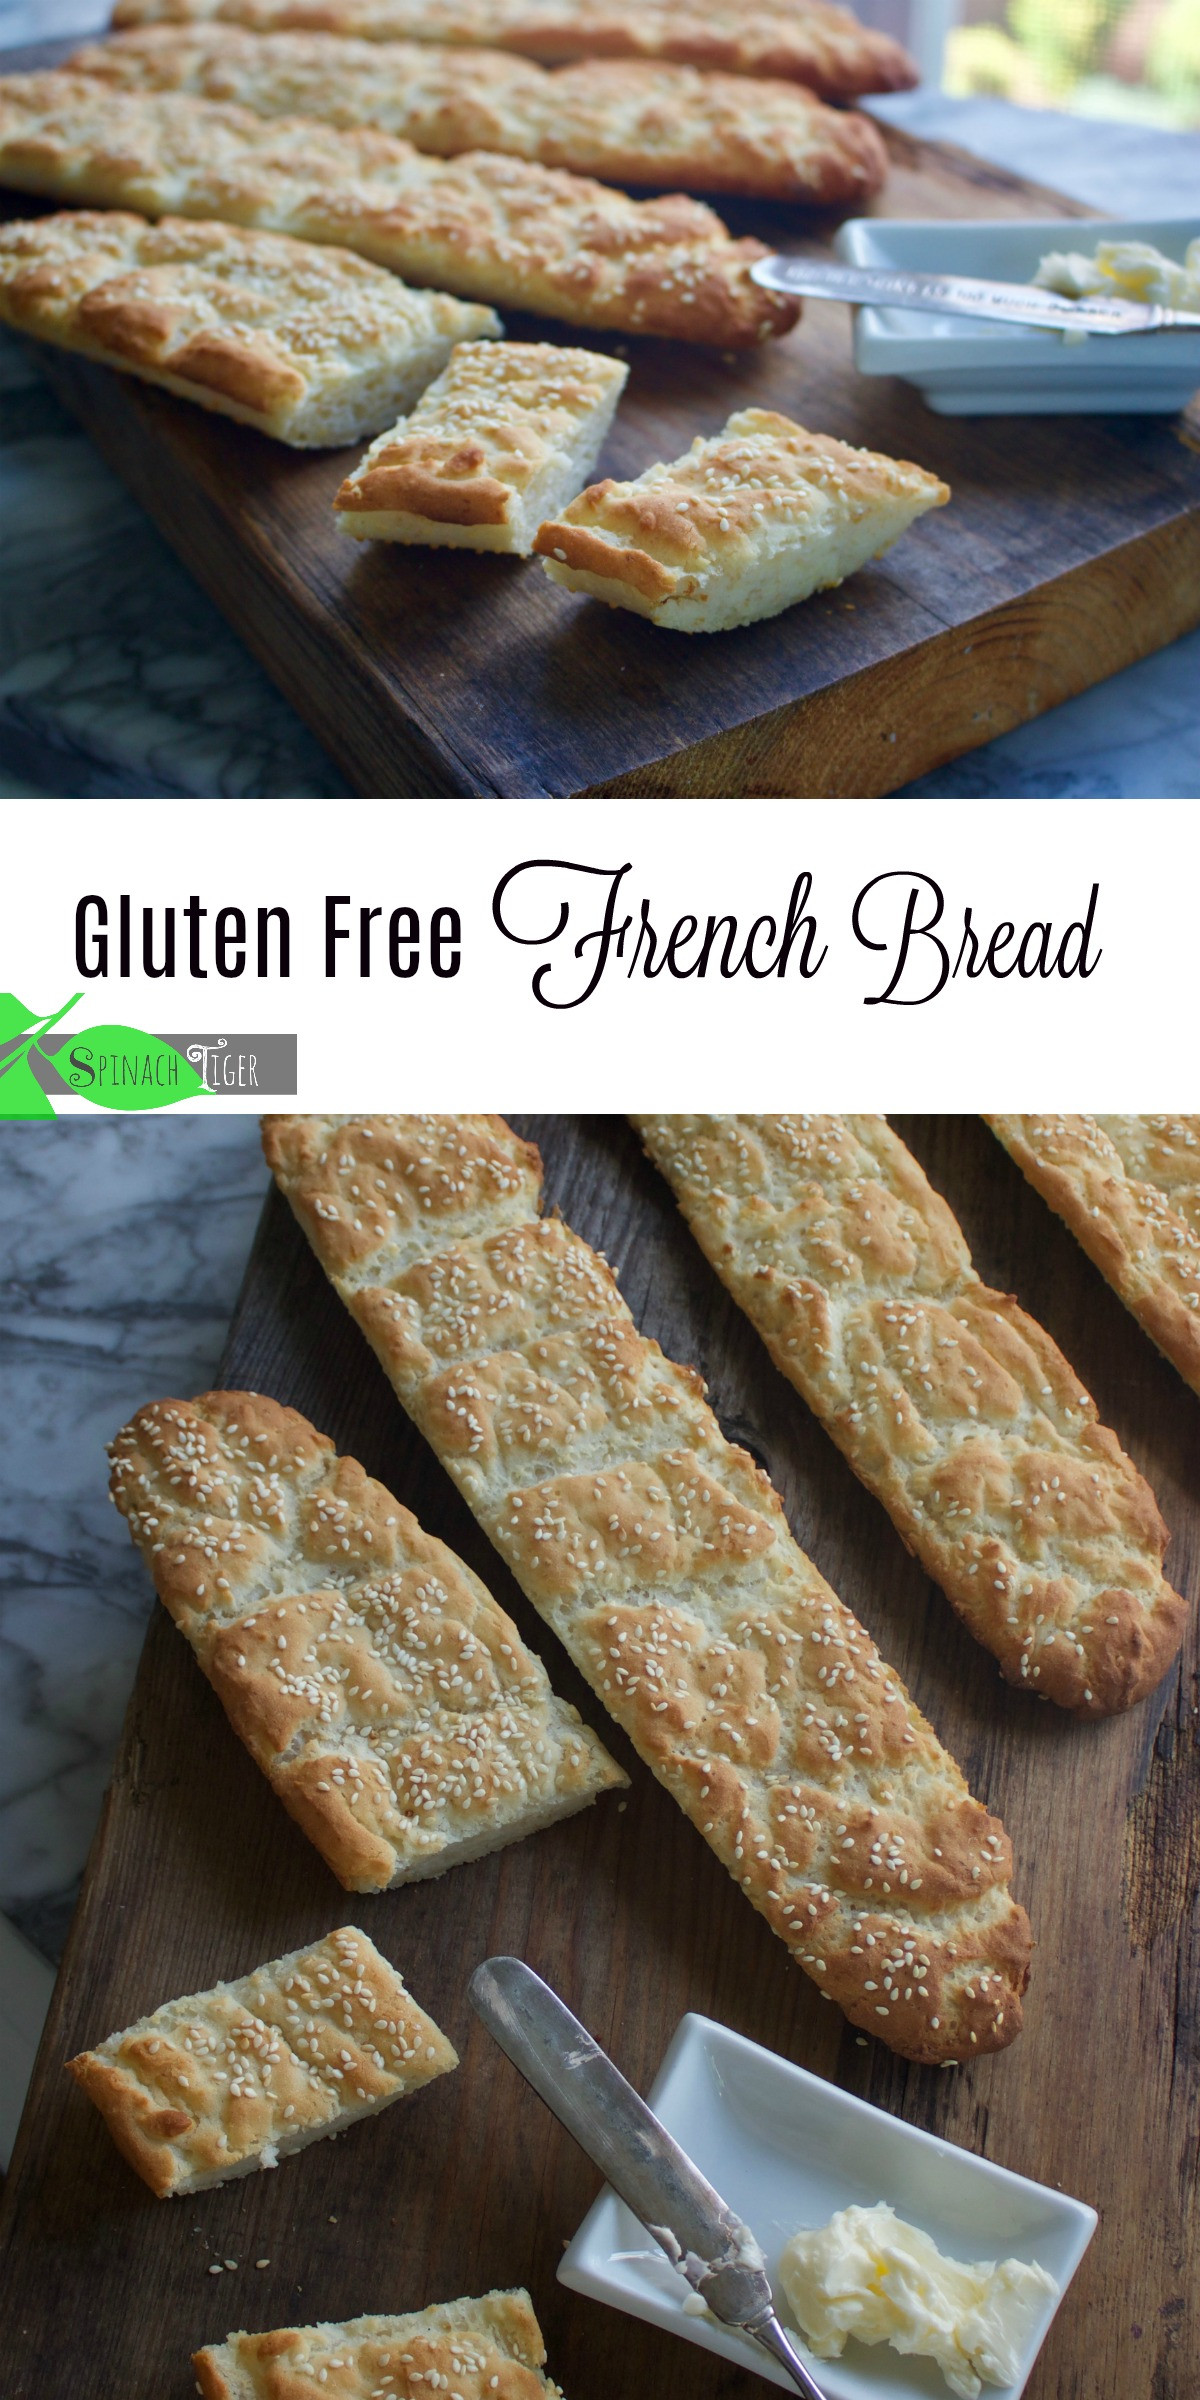 Gluten Free French Bread  How to Make the Best Gluten Free French Bread Recipe in